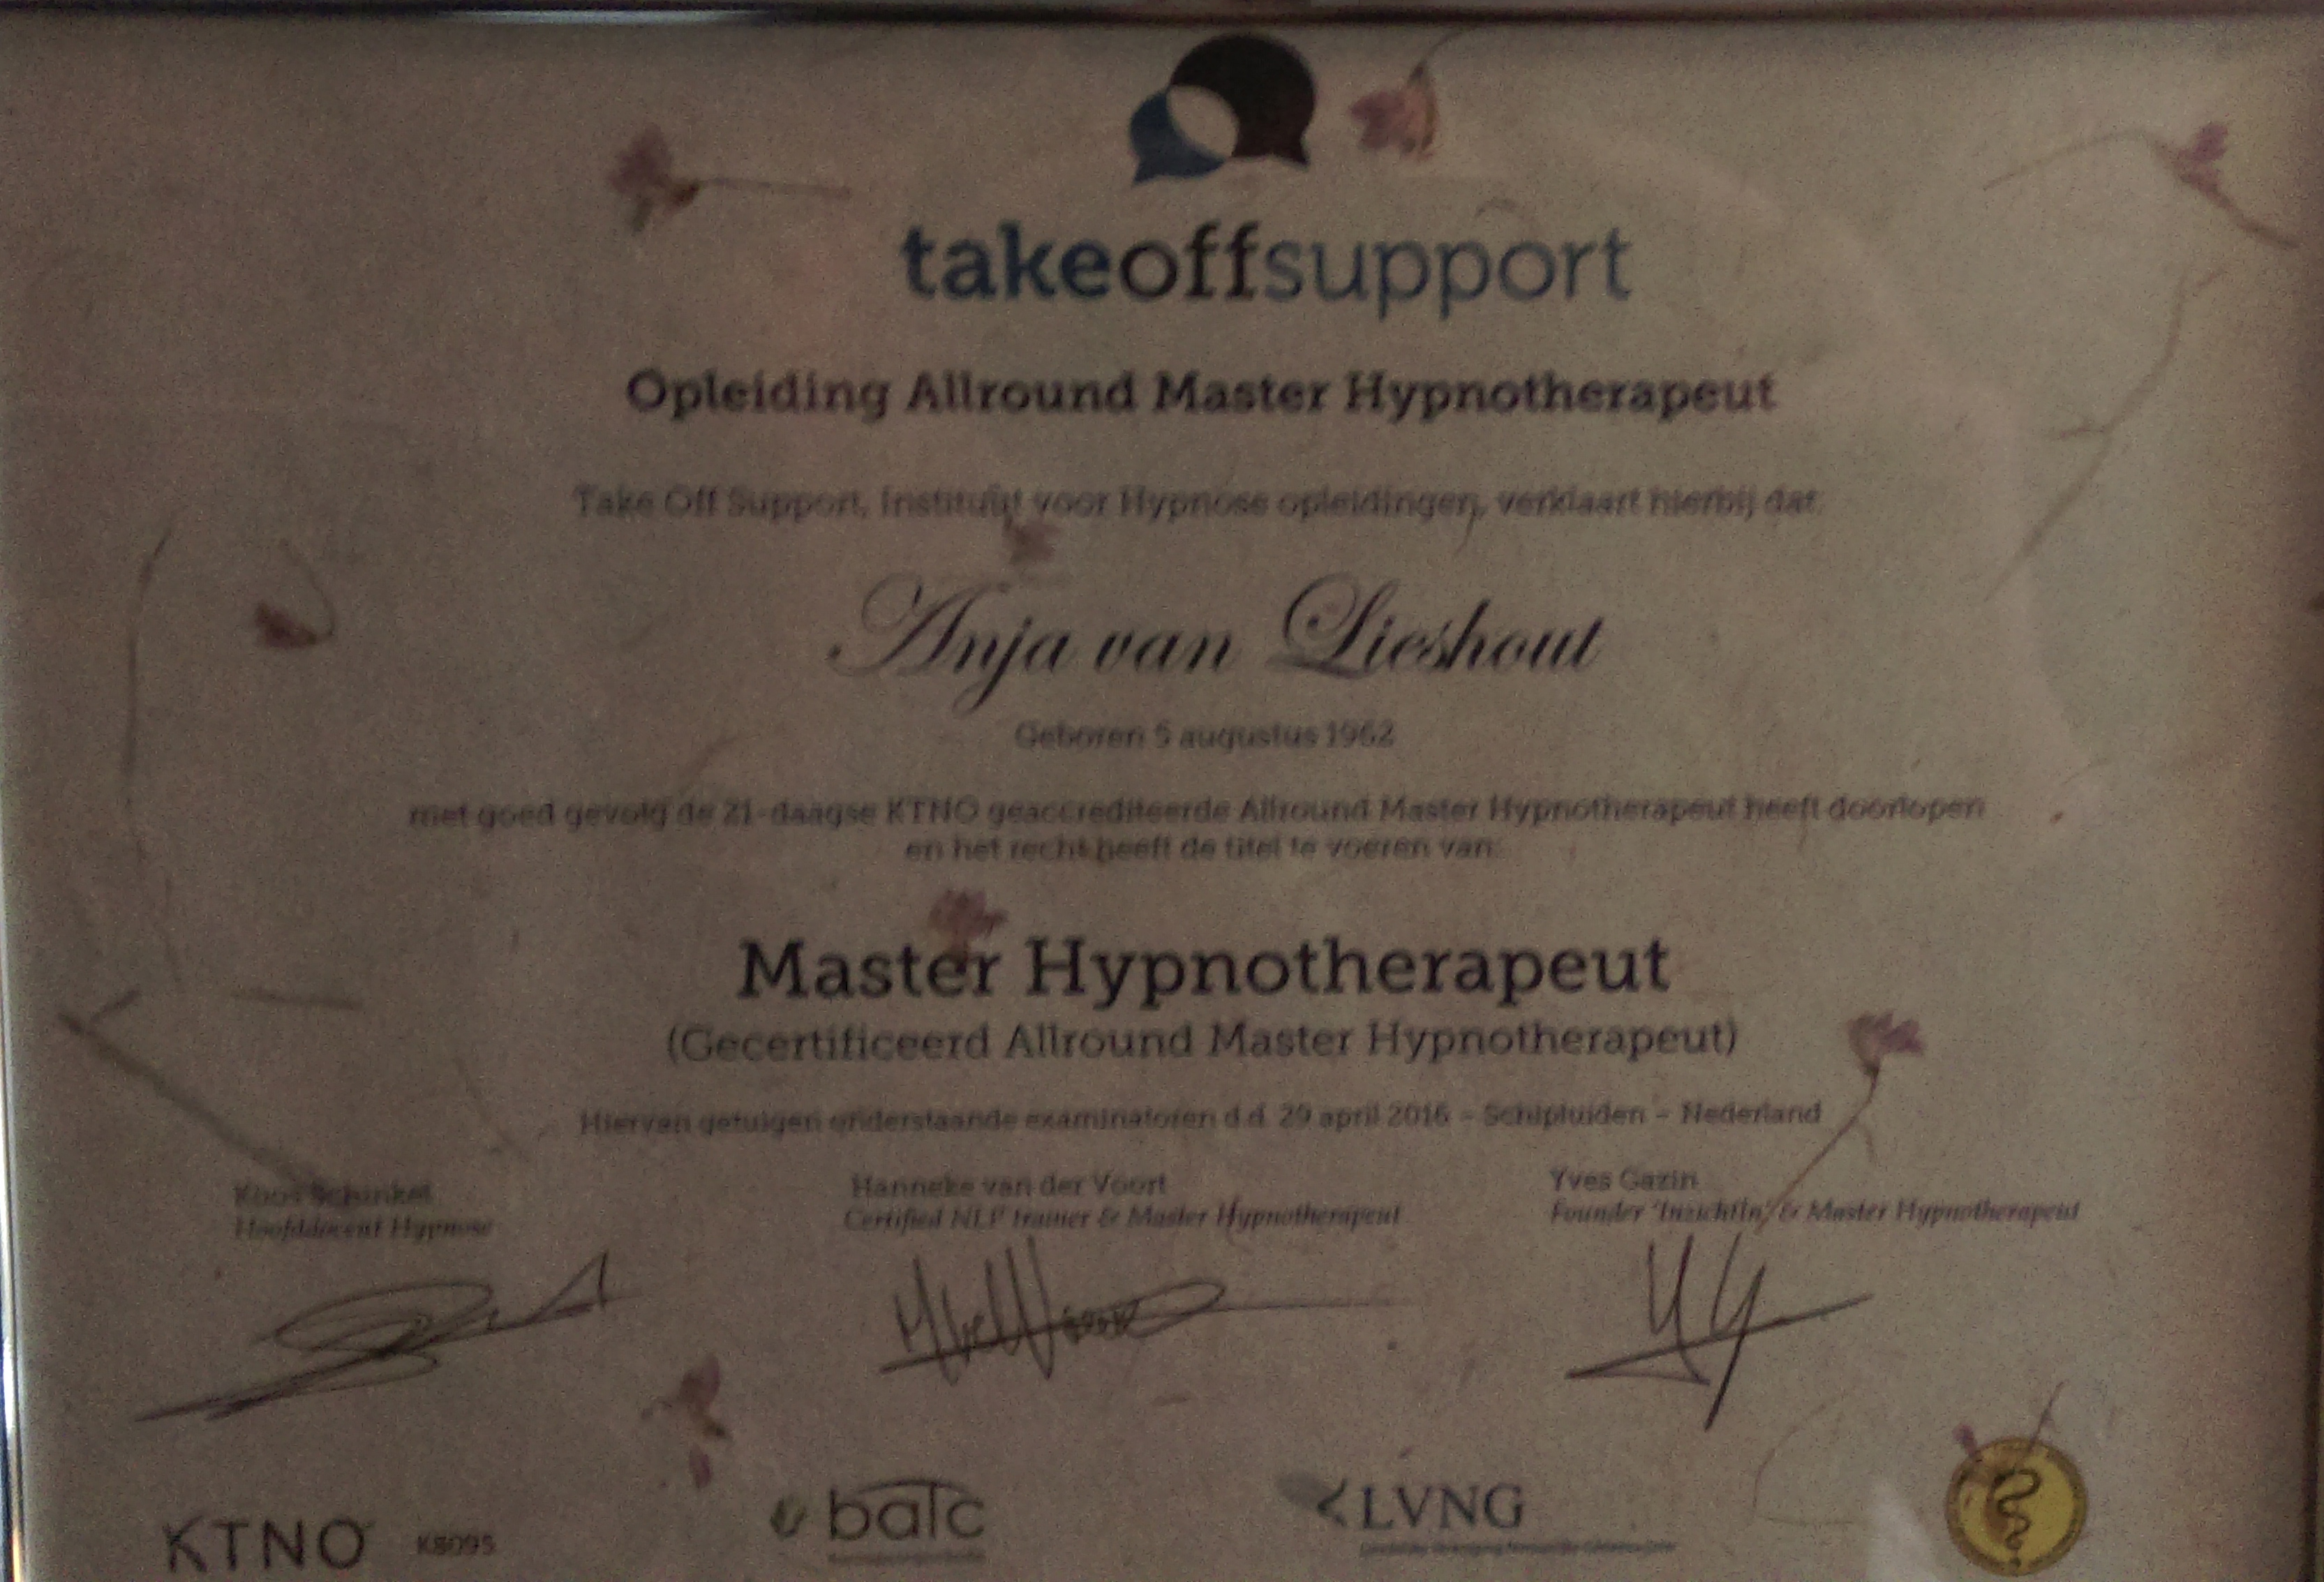 Master Hypnotherapeut